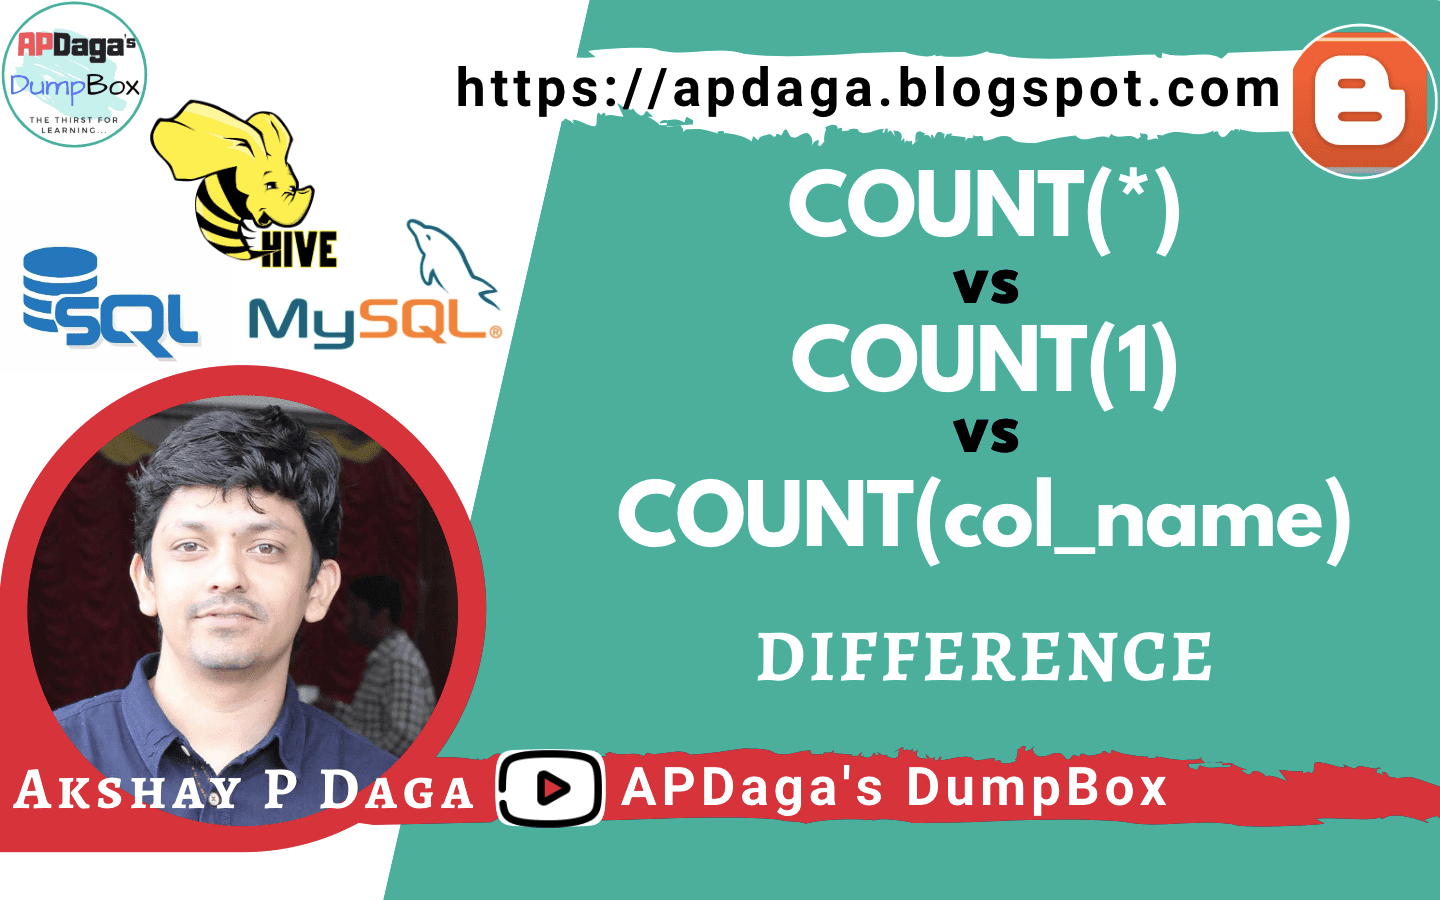 Difference in COUNT(*) vs COUNT(1) vs COUNT(col_name) in SQL